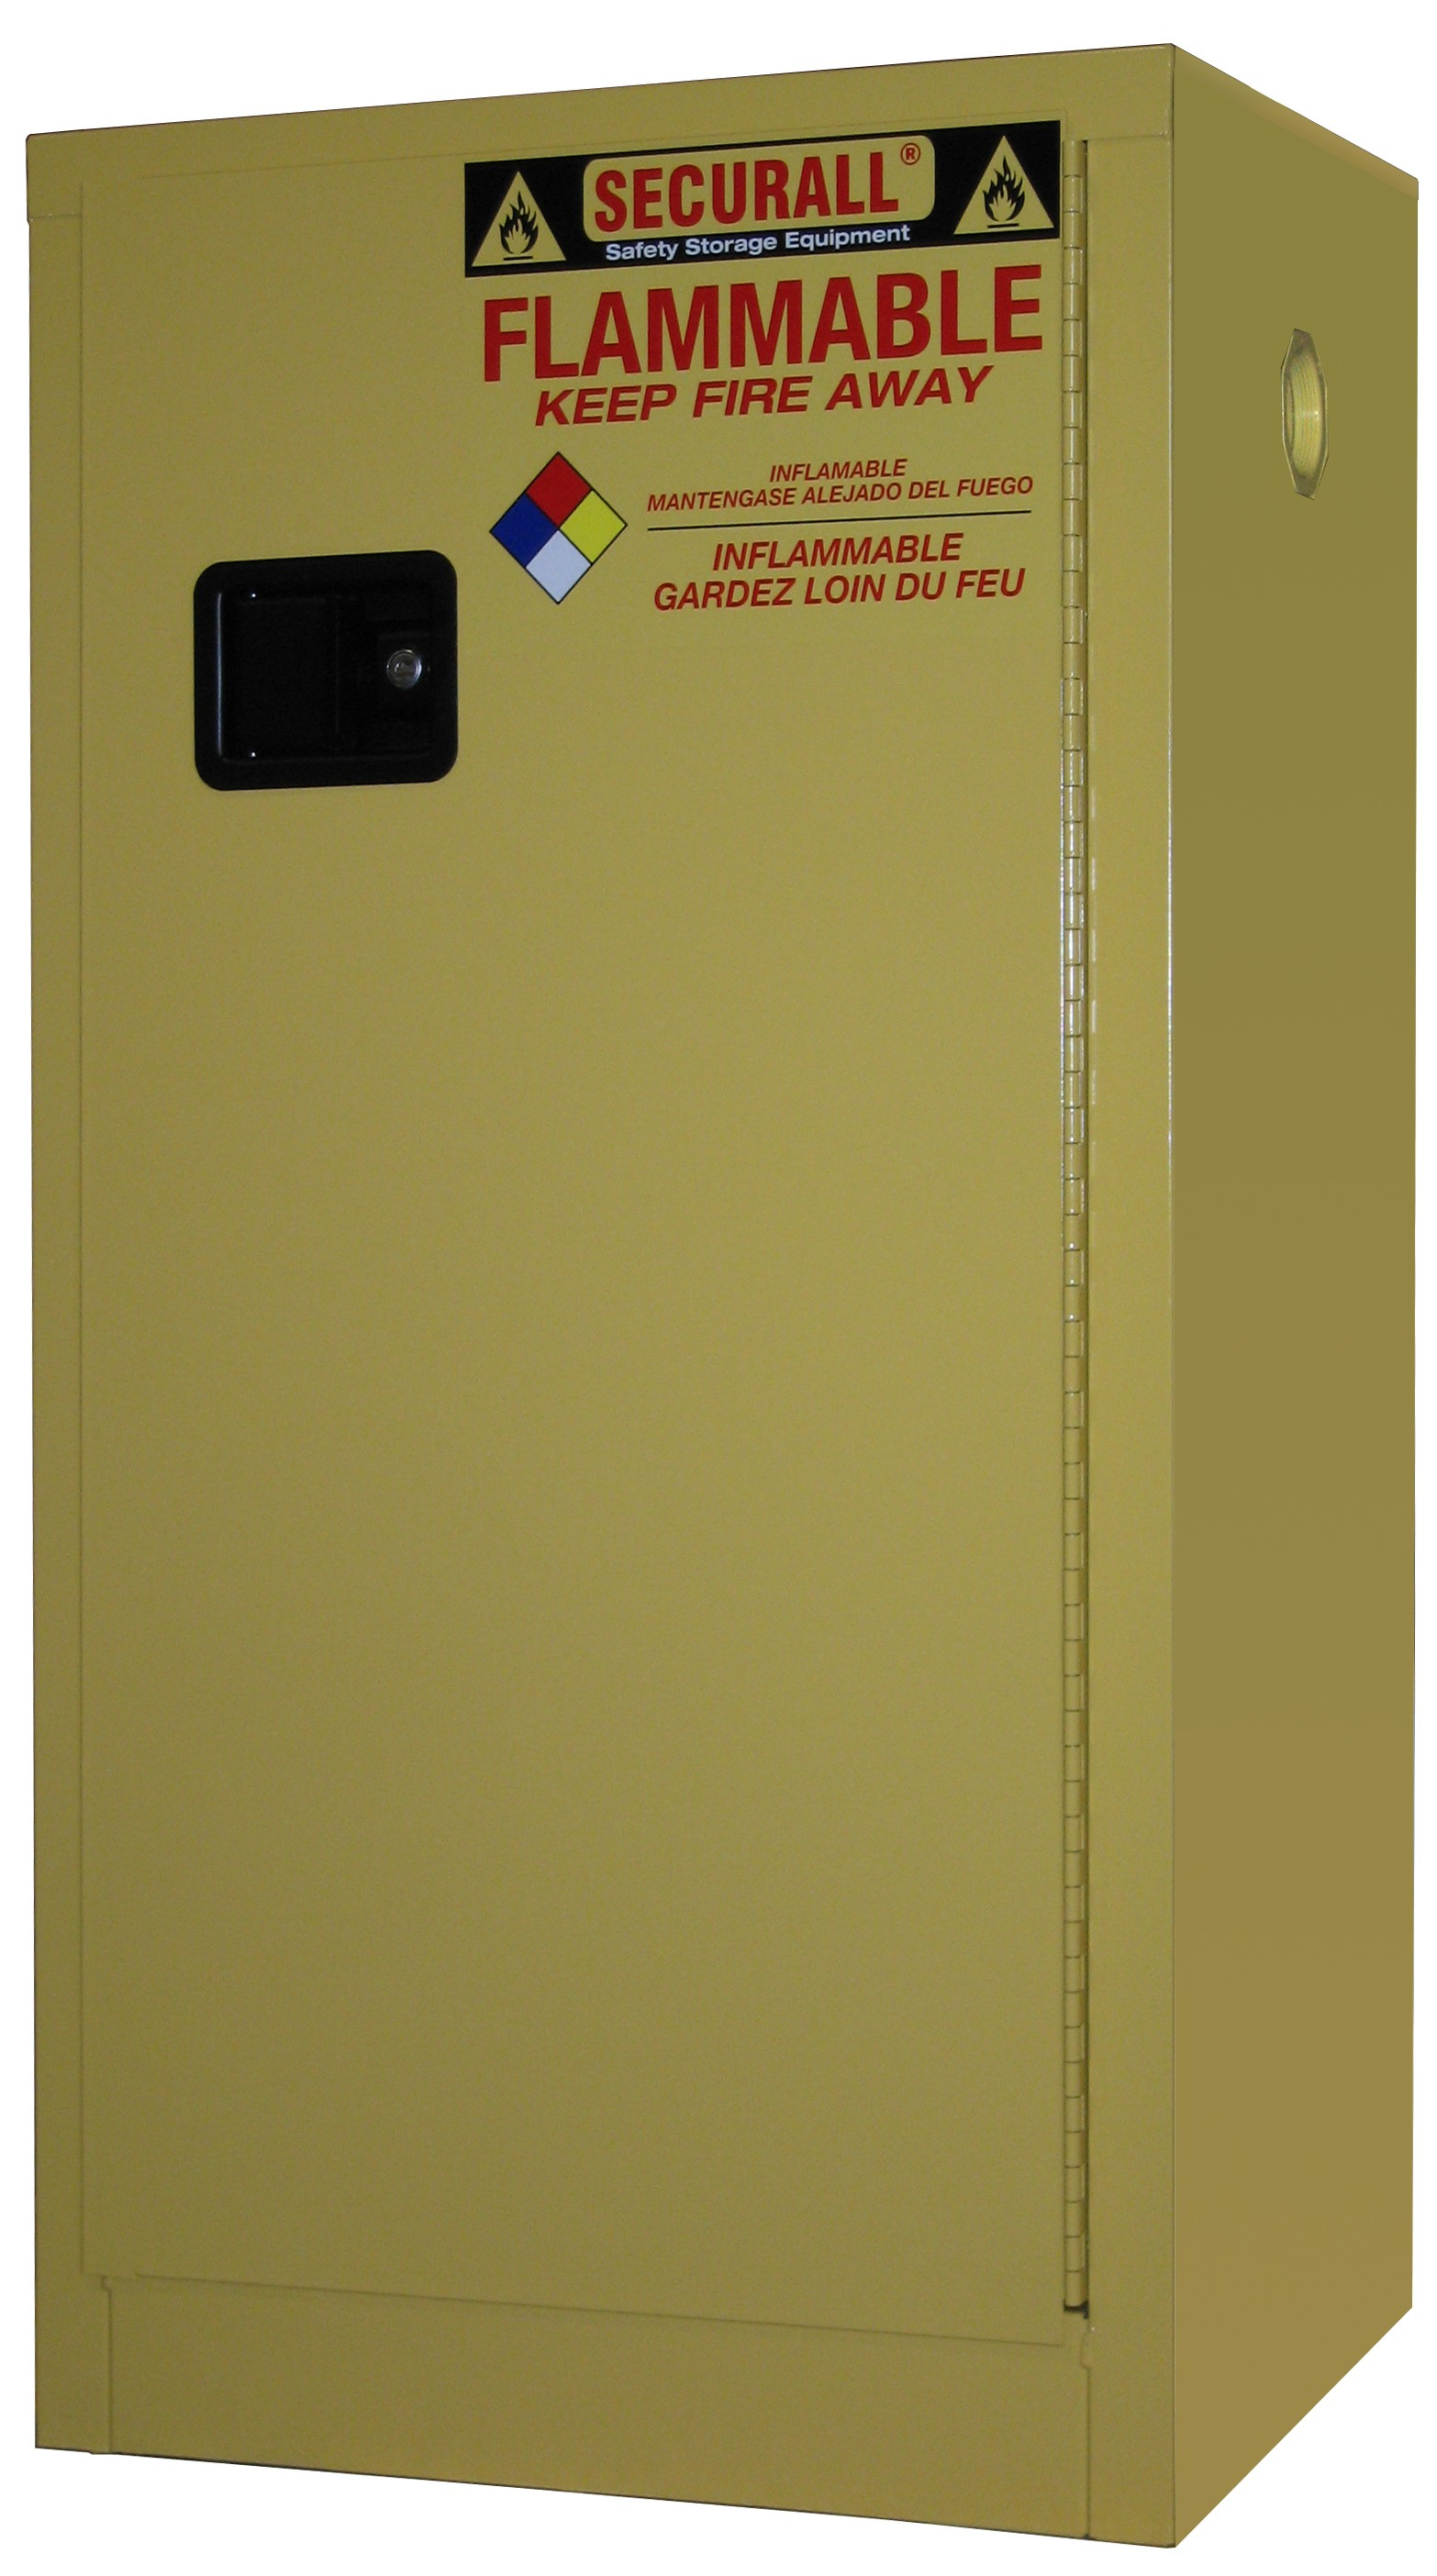 P120 - 20 Gallon Flammable Paint & Ink Storage Cabinet